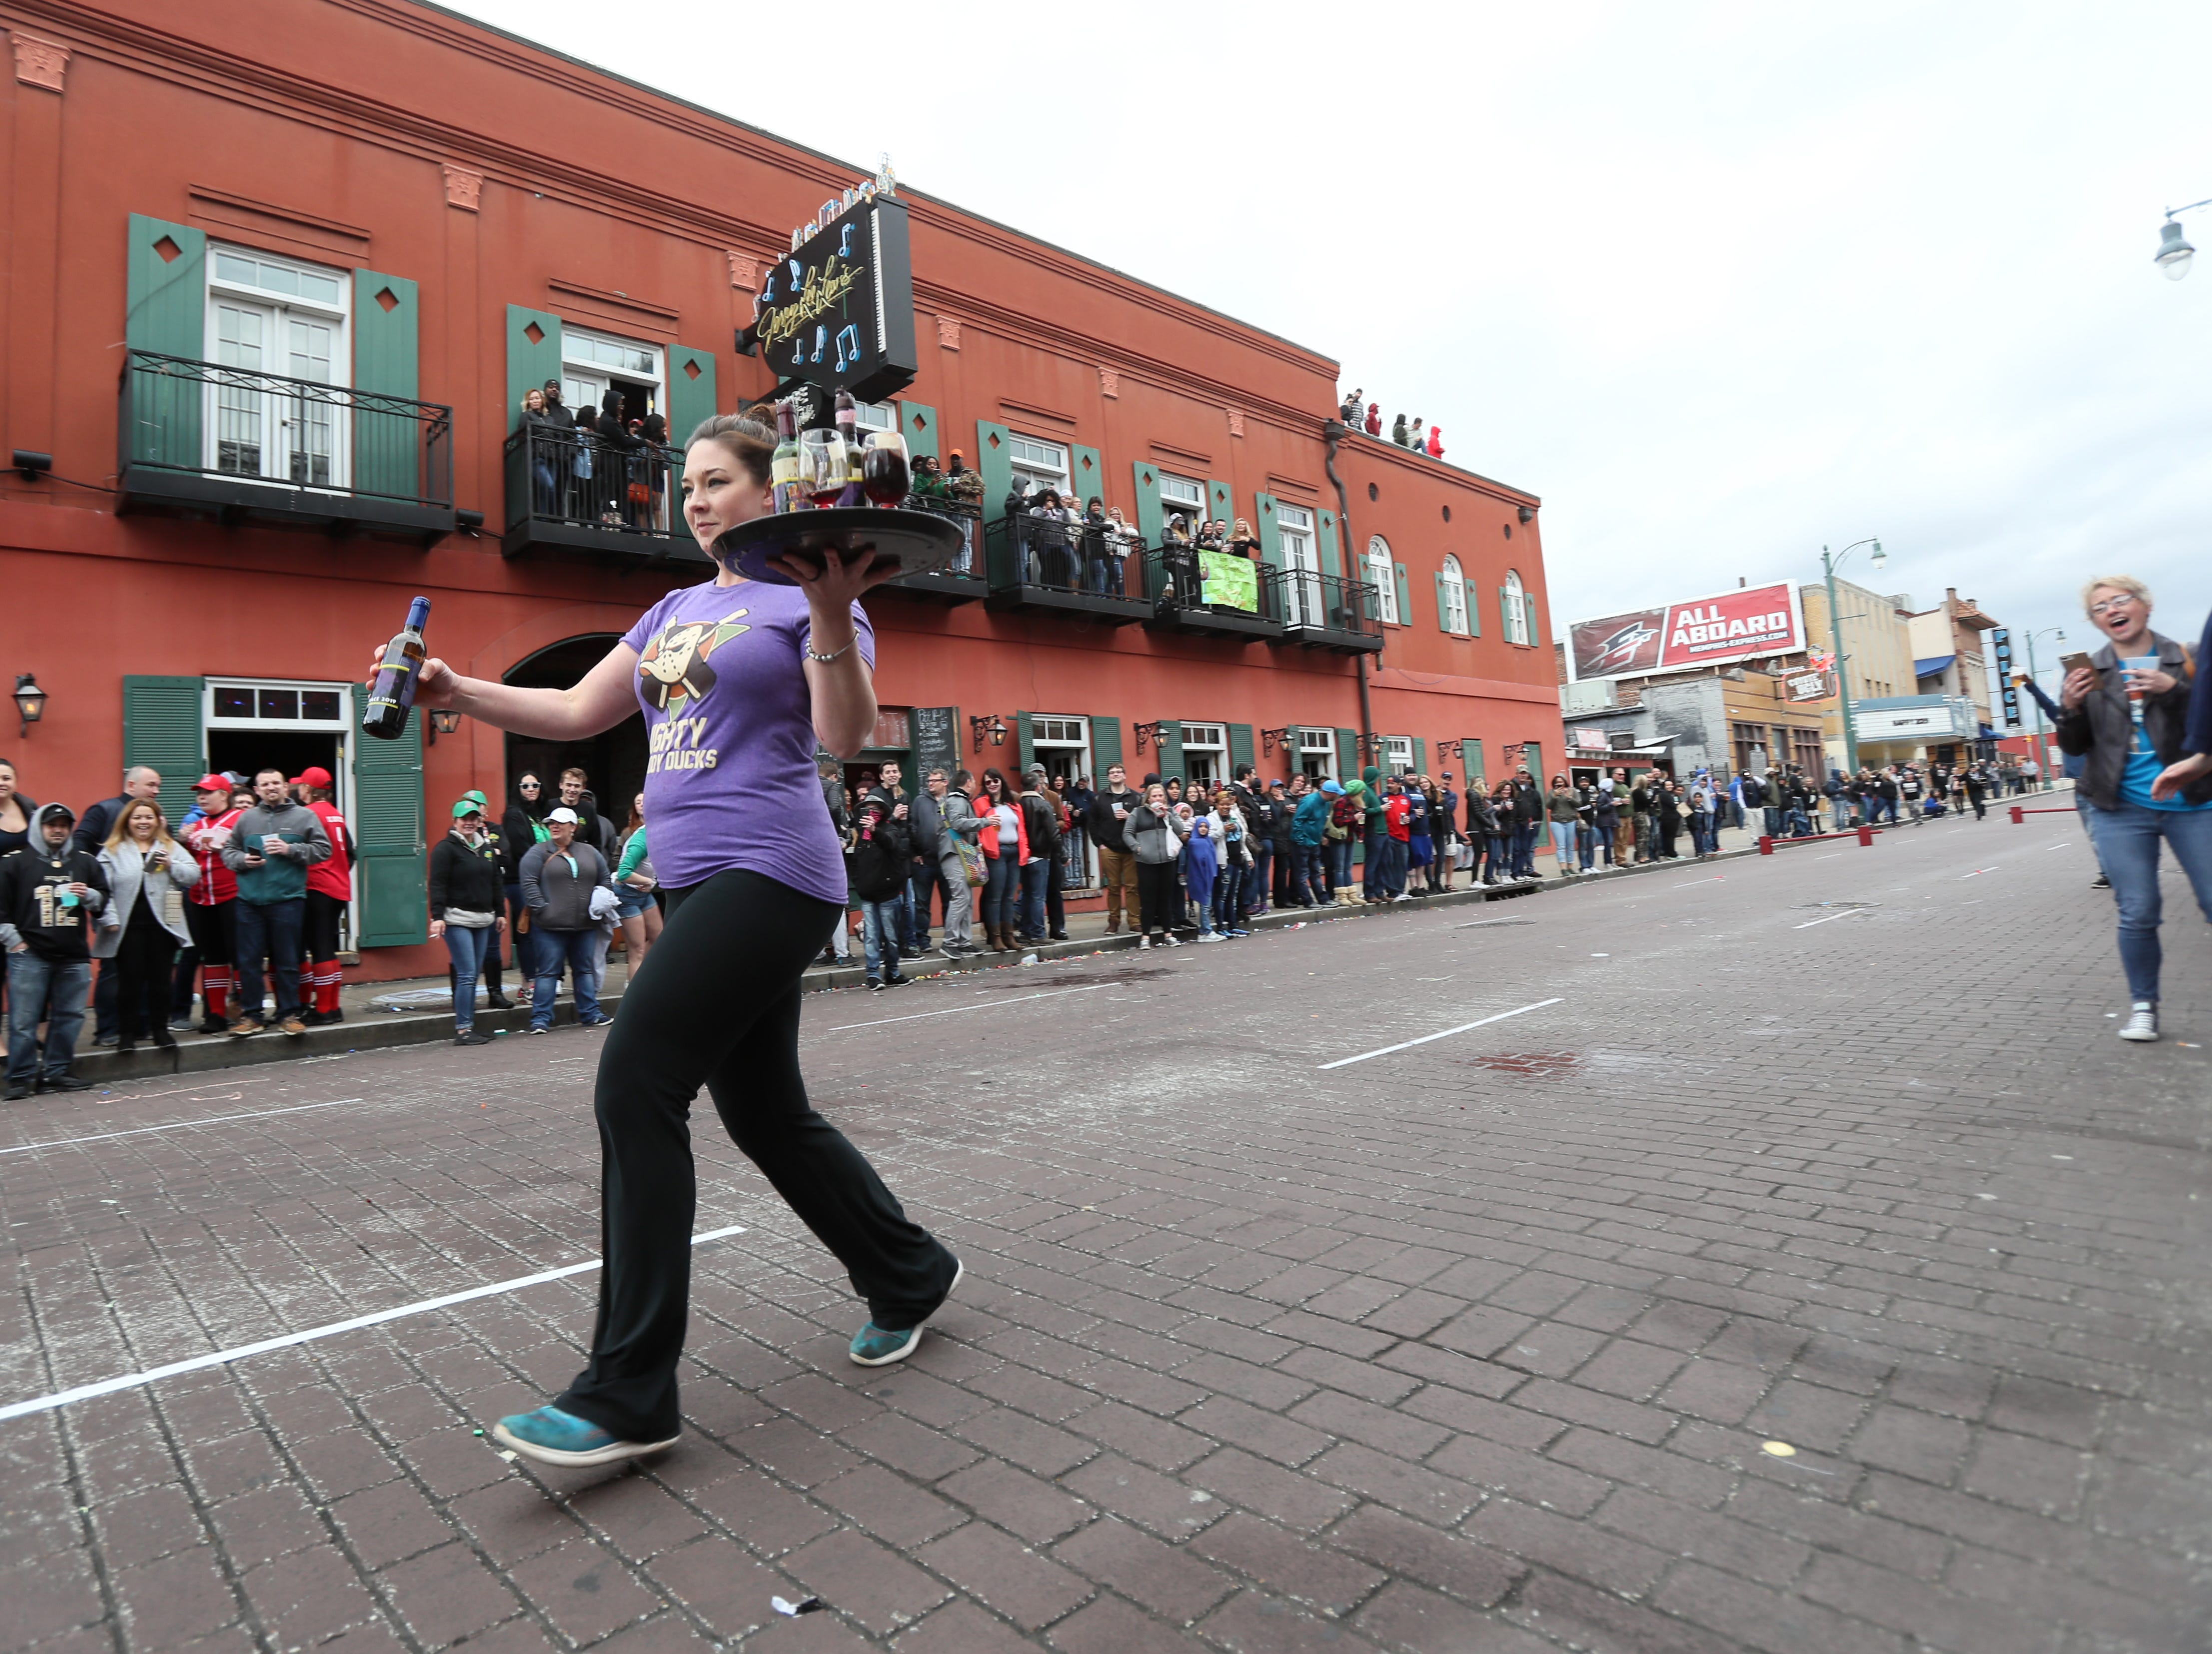 Beale Street Wine Race downtown with Queen of the Vine contest, Grape Stomp and the Great Wince Race on Sunday, April 14, 2019.